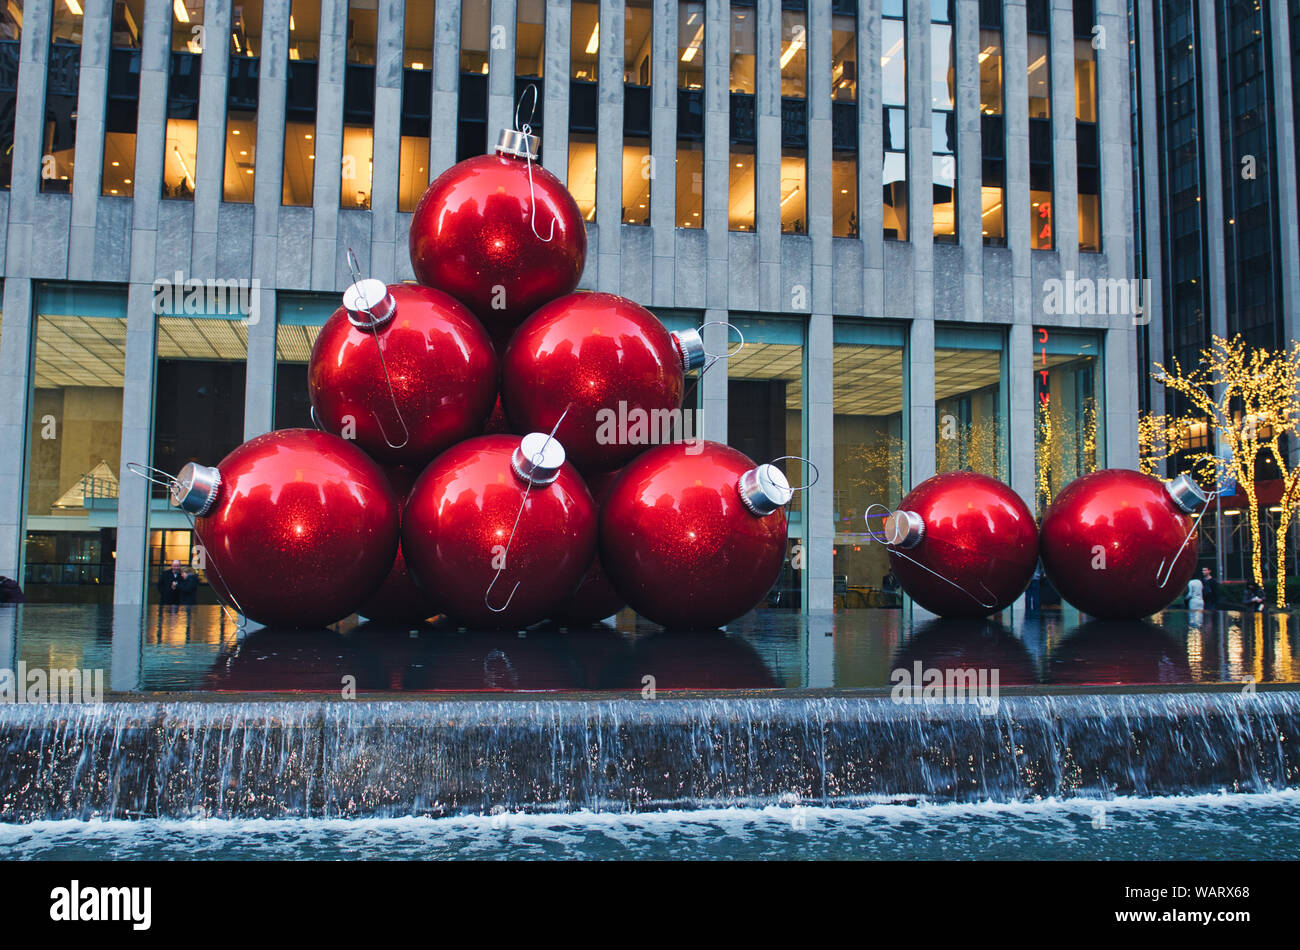 Large Christmas Ornaments.Large Christmas Ornaments On Display In New York City Stock